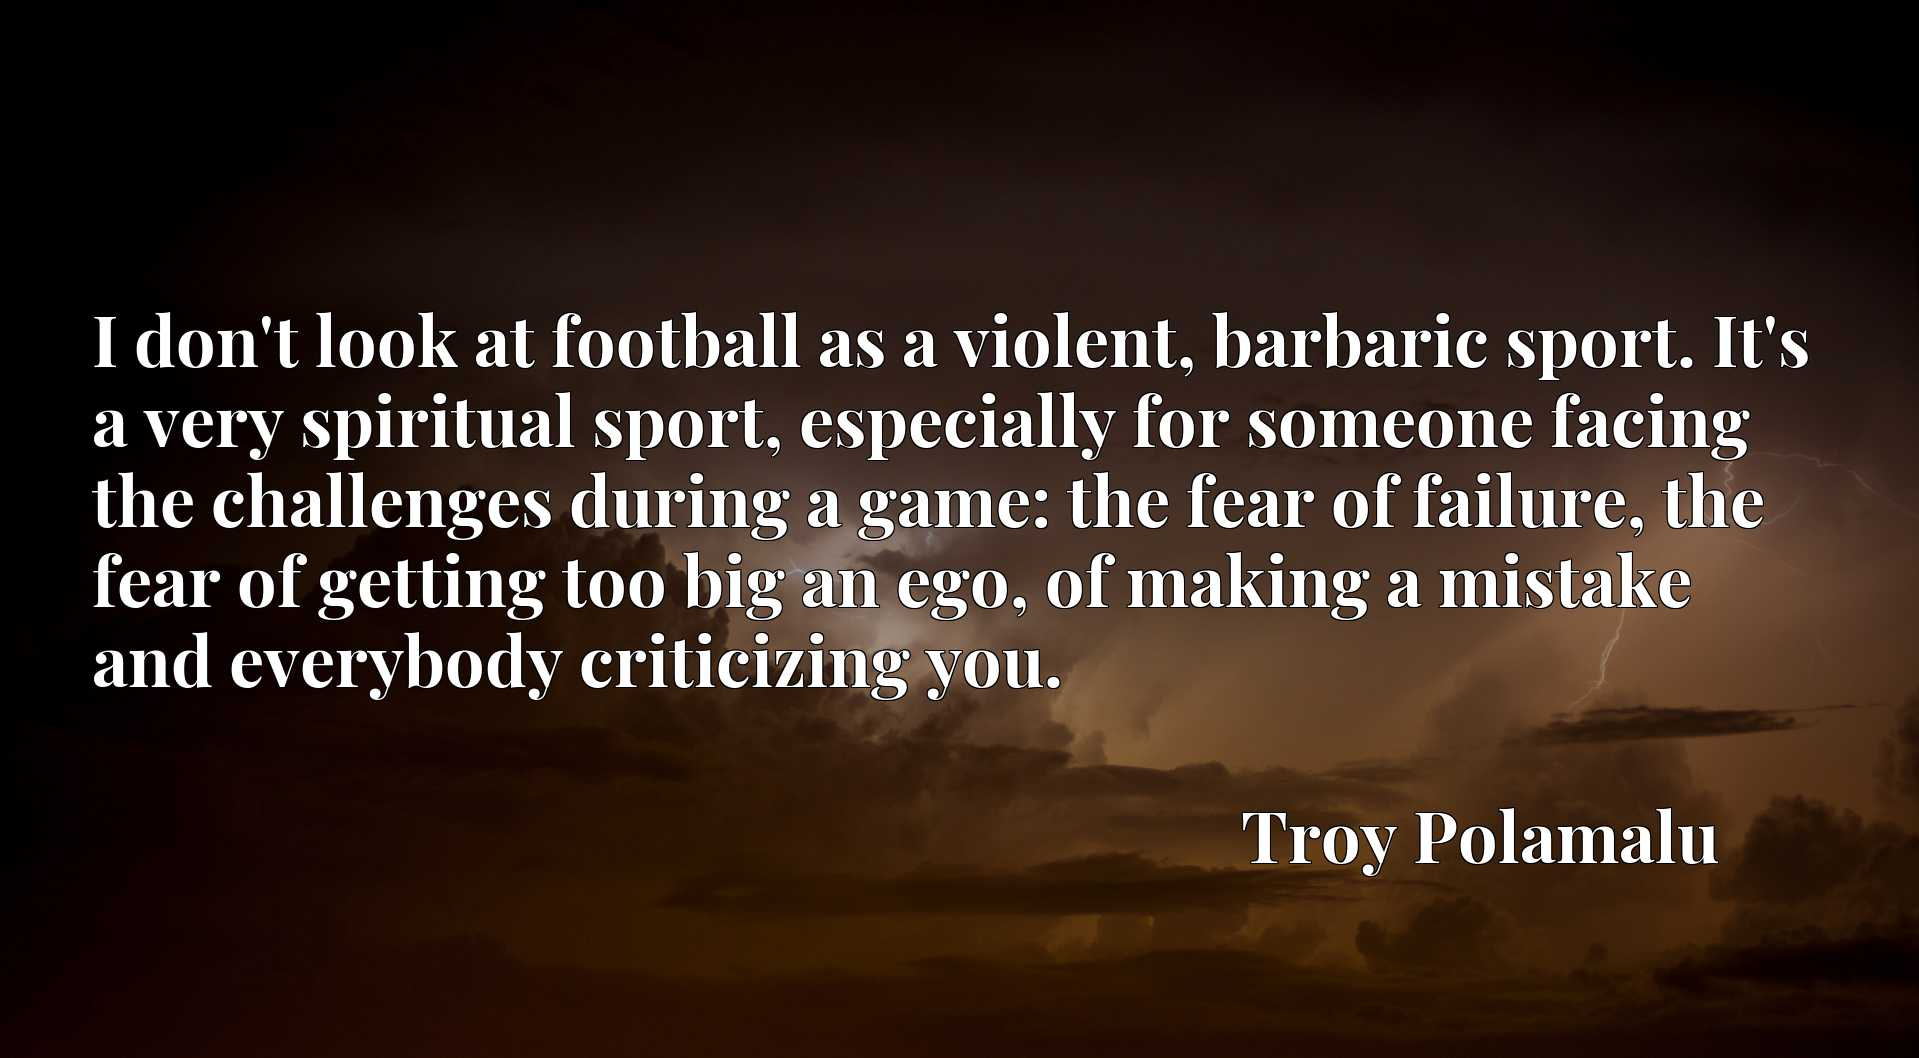 I don't look at football as a violent, barbaric sport. It's a very spiritual sport, especially for someone facing the challenges during a game: the fear of failure, the fear of getting too big an ego, of making a mistake and everybody criticizing you.